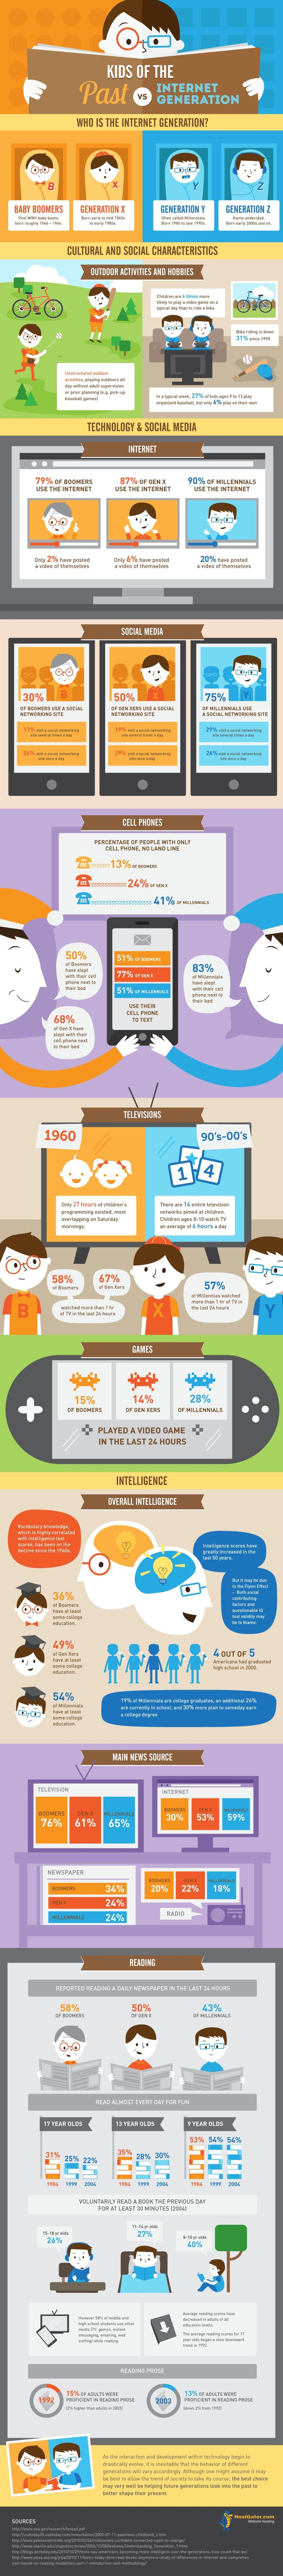 Kids: Past Vs. Internet Generation - really interesting infographic on how behaviour has changed; intelligence is up apparently #socialmedia #infographics